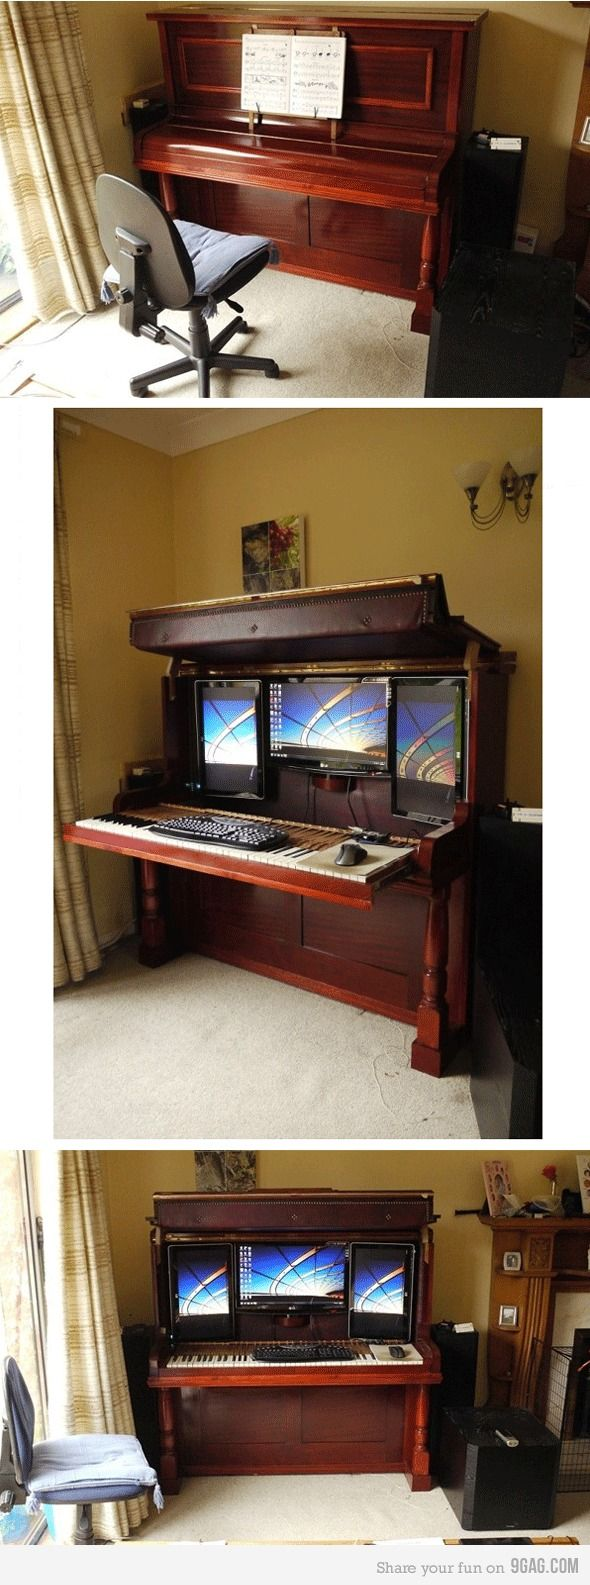 Ingenious! -> An upright piano converted into a 3 screen computer desk when opened. #furniture